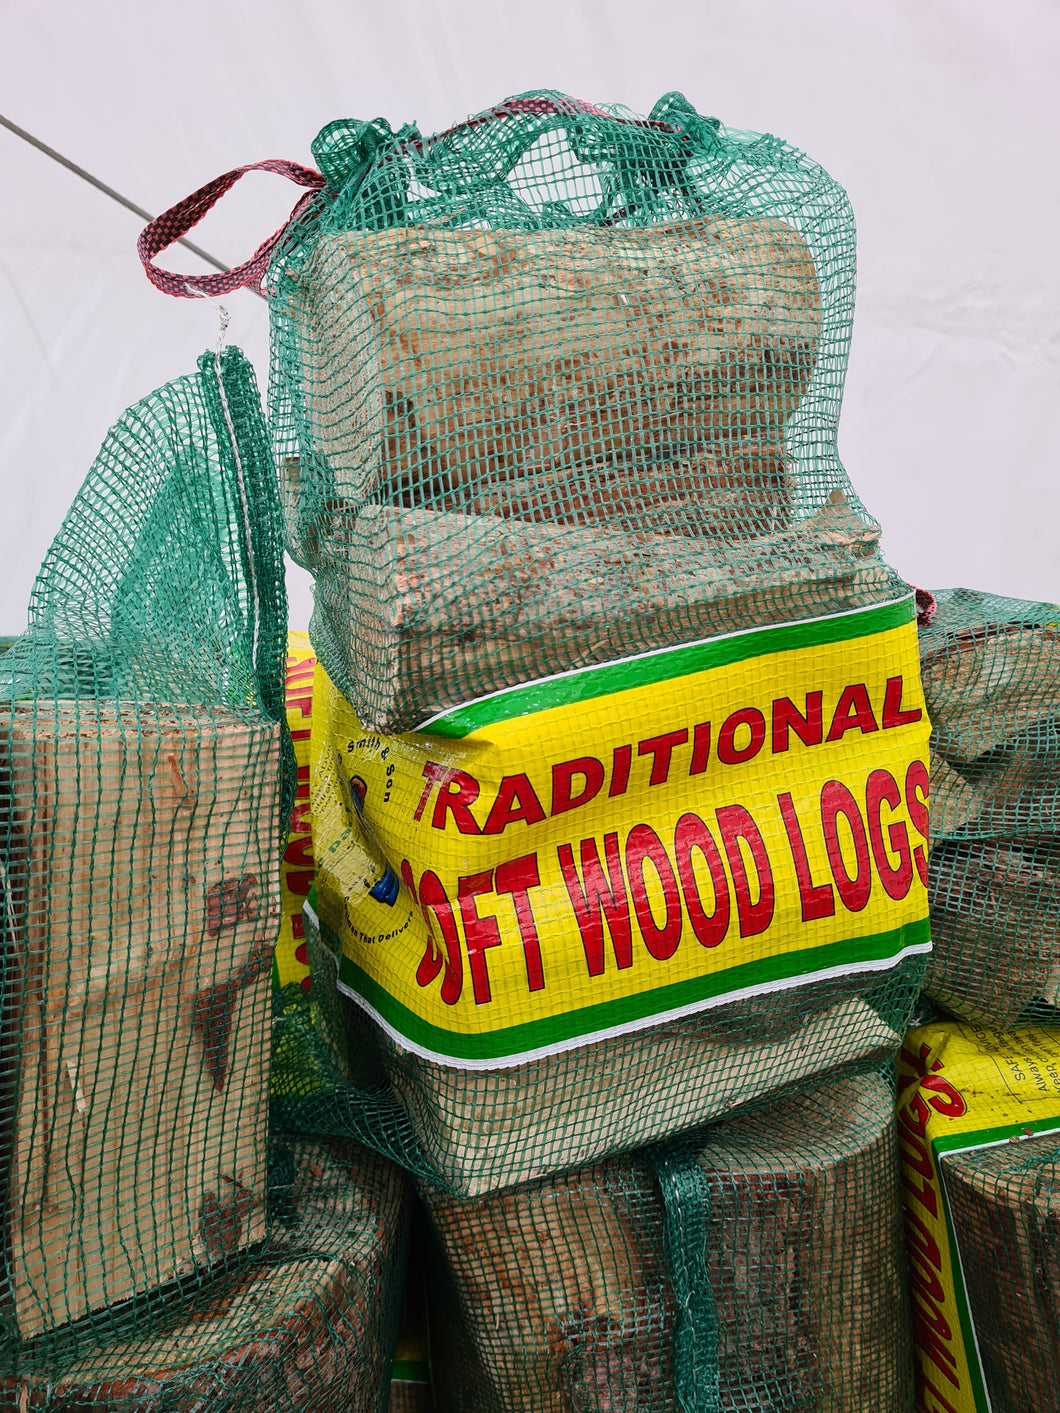 Traditional Soft-Wood Logs 10KG